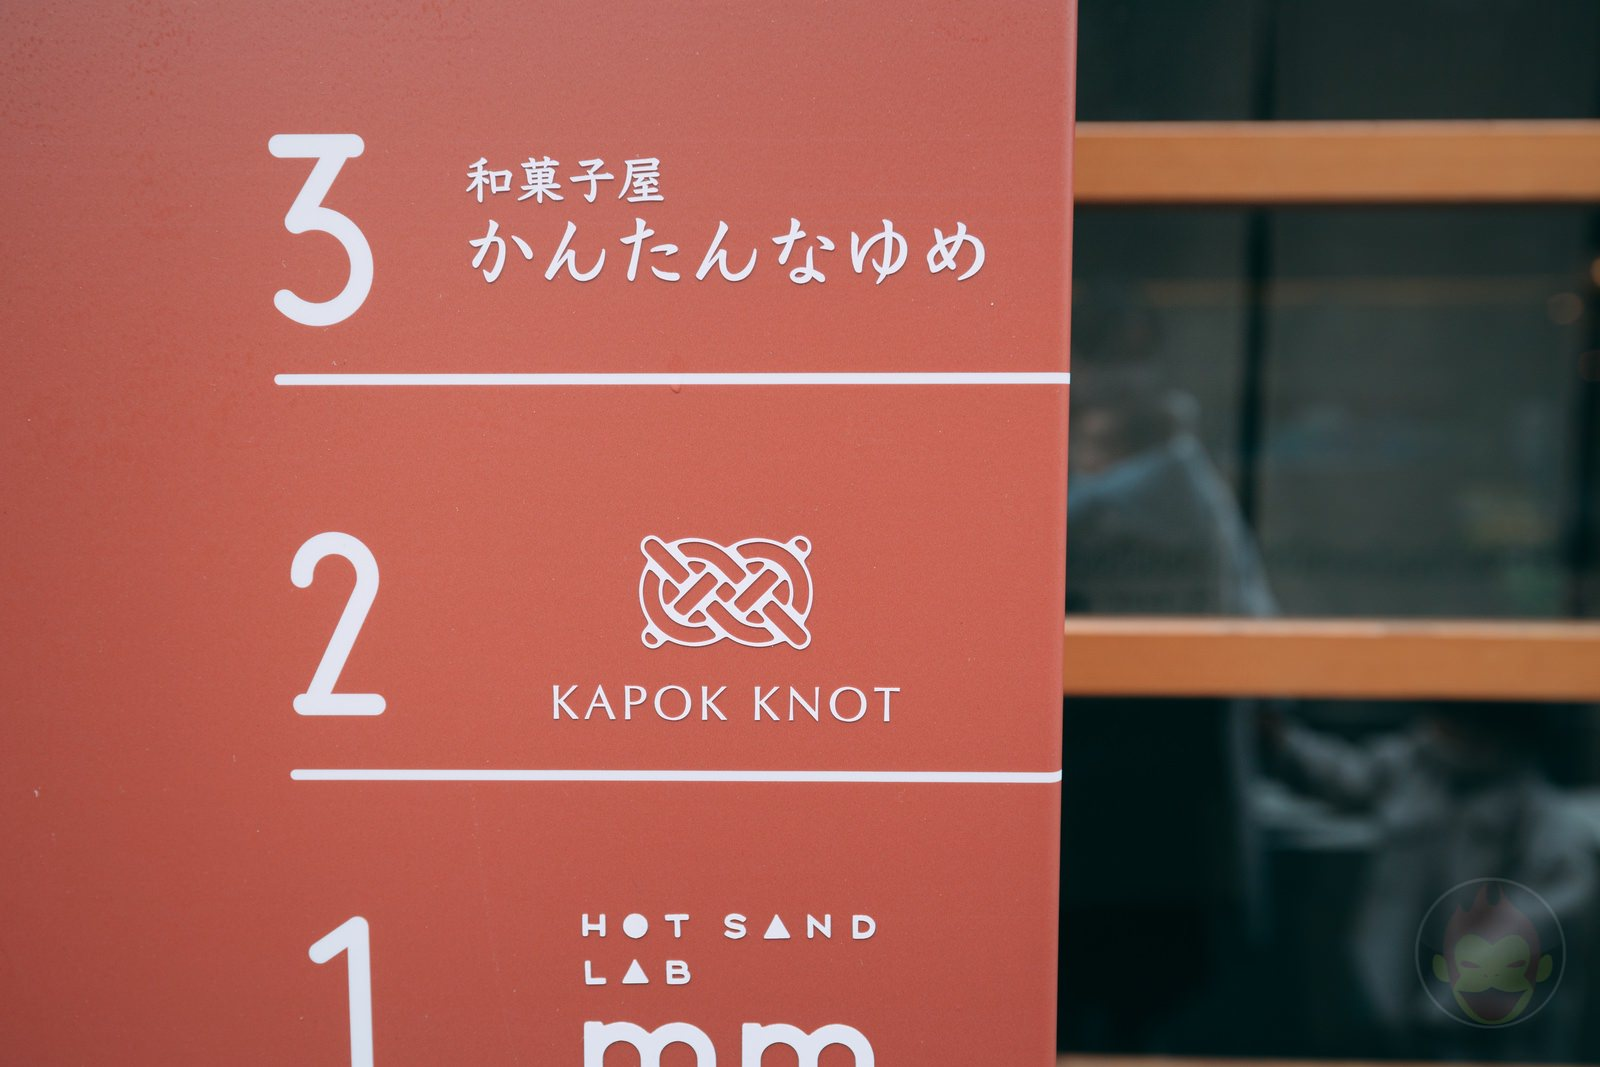 Trying Kapok knot 01